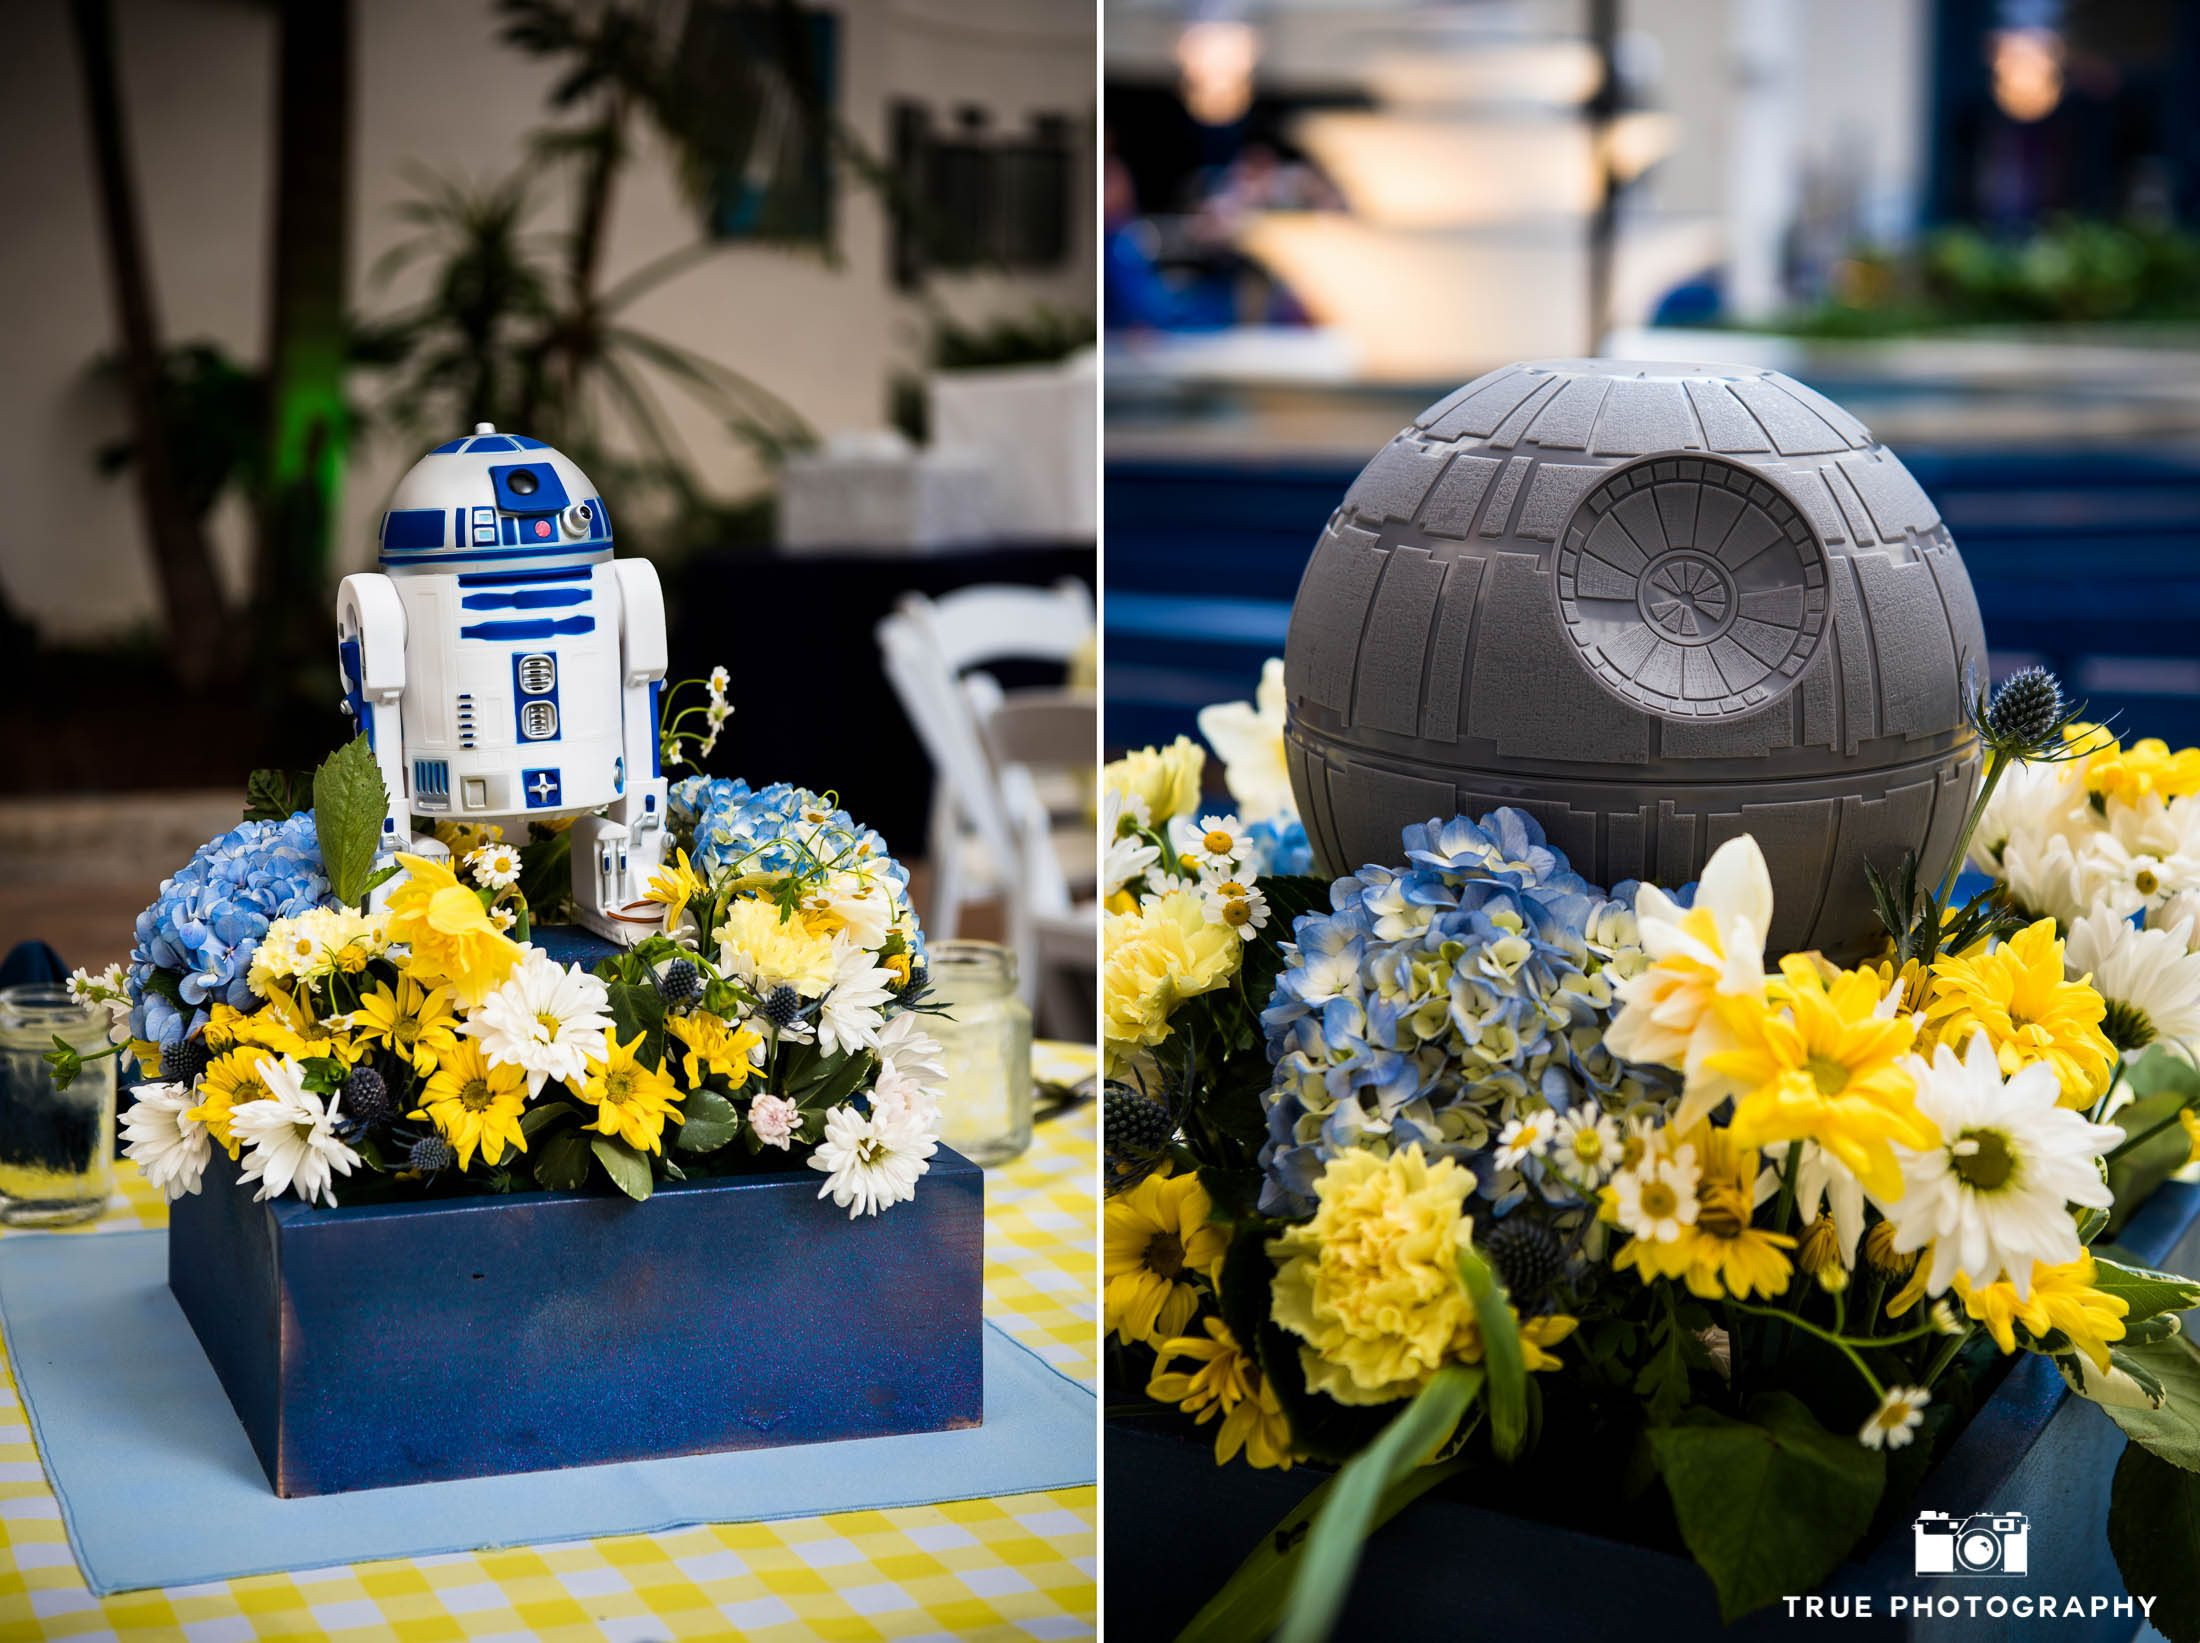 Stars Wars themed centerpieces during reception at Air and Space museum